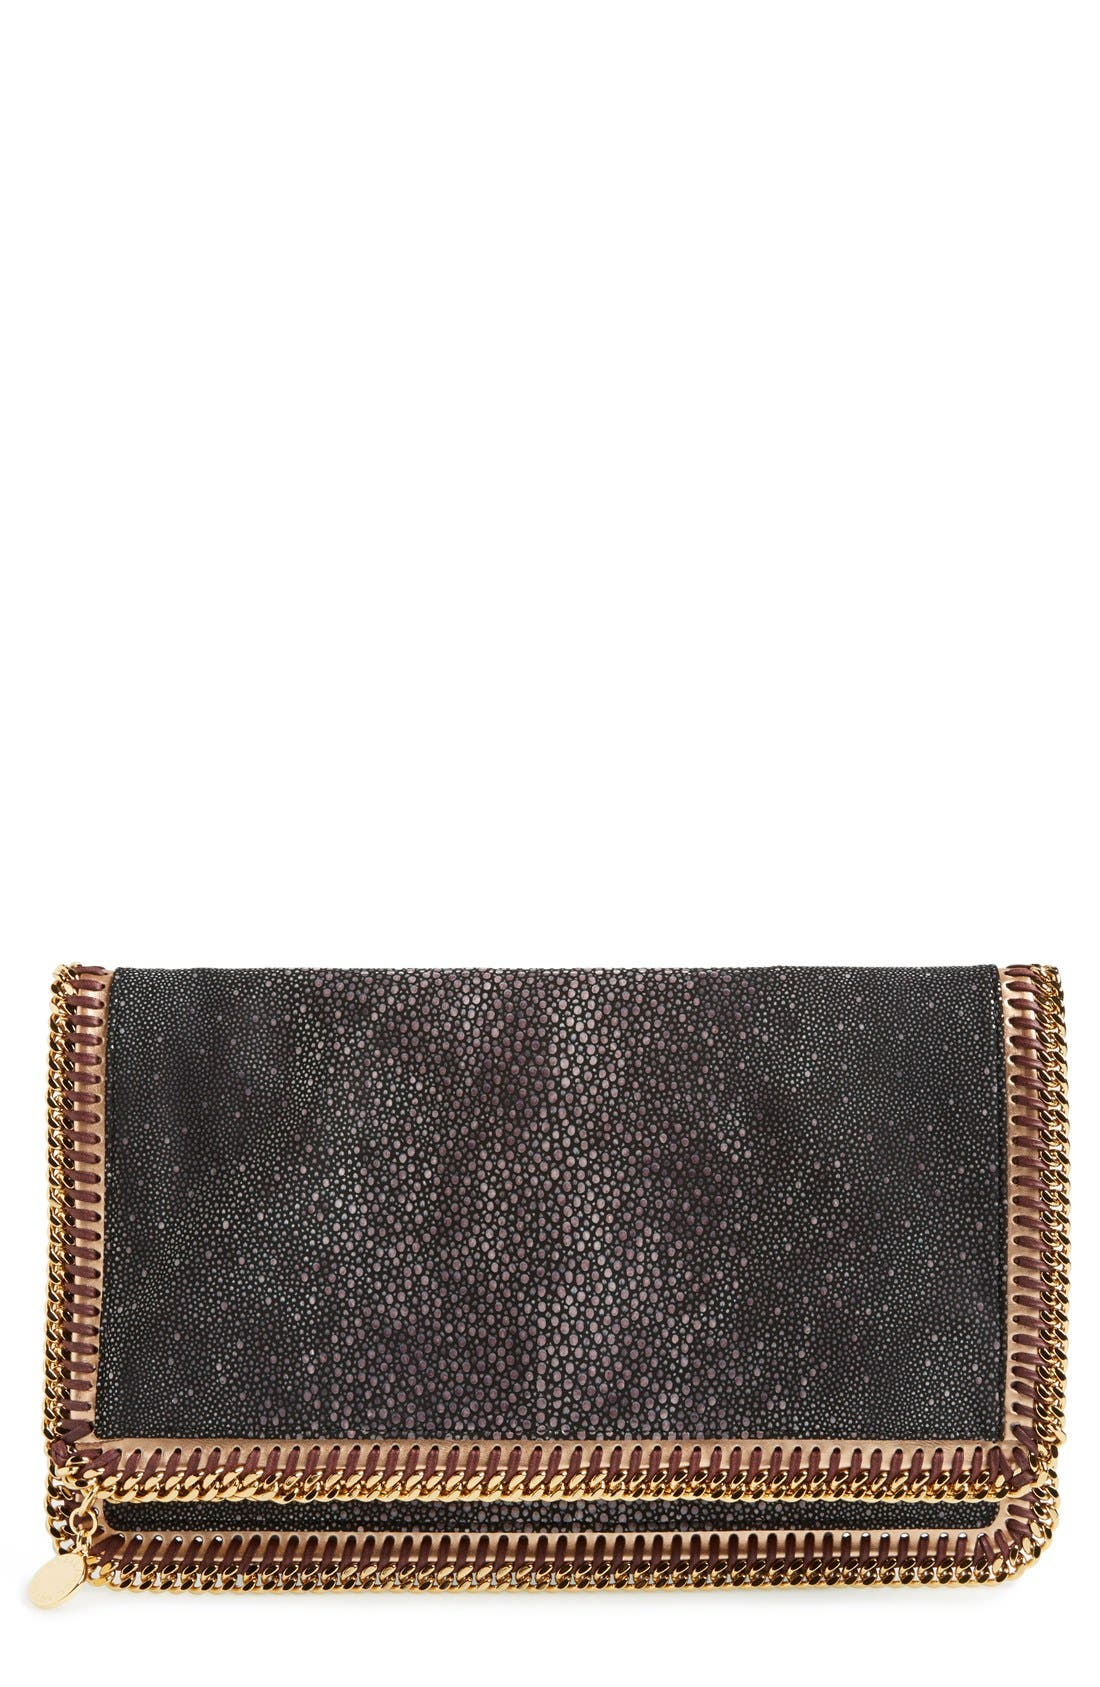 Alternate Image 1 Selected - Stella McCartney 'Falabella' Faux Stingray Clutch